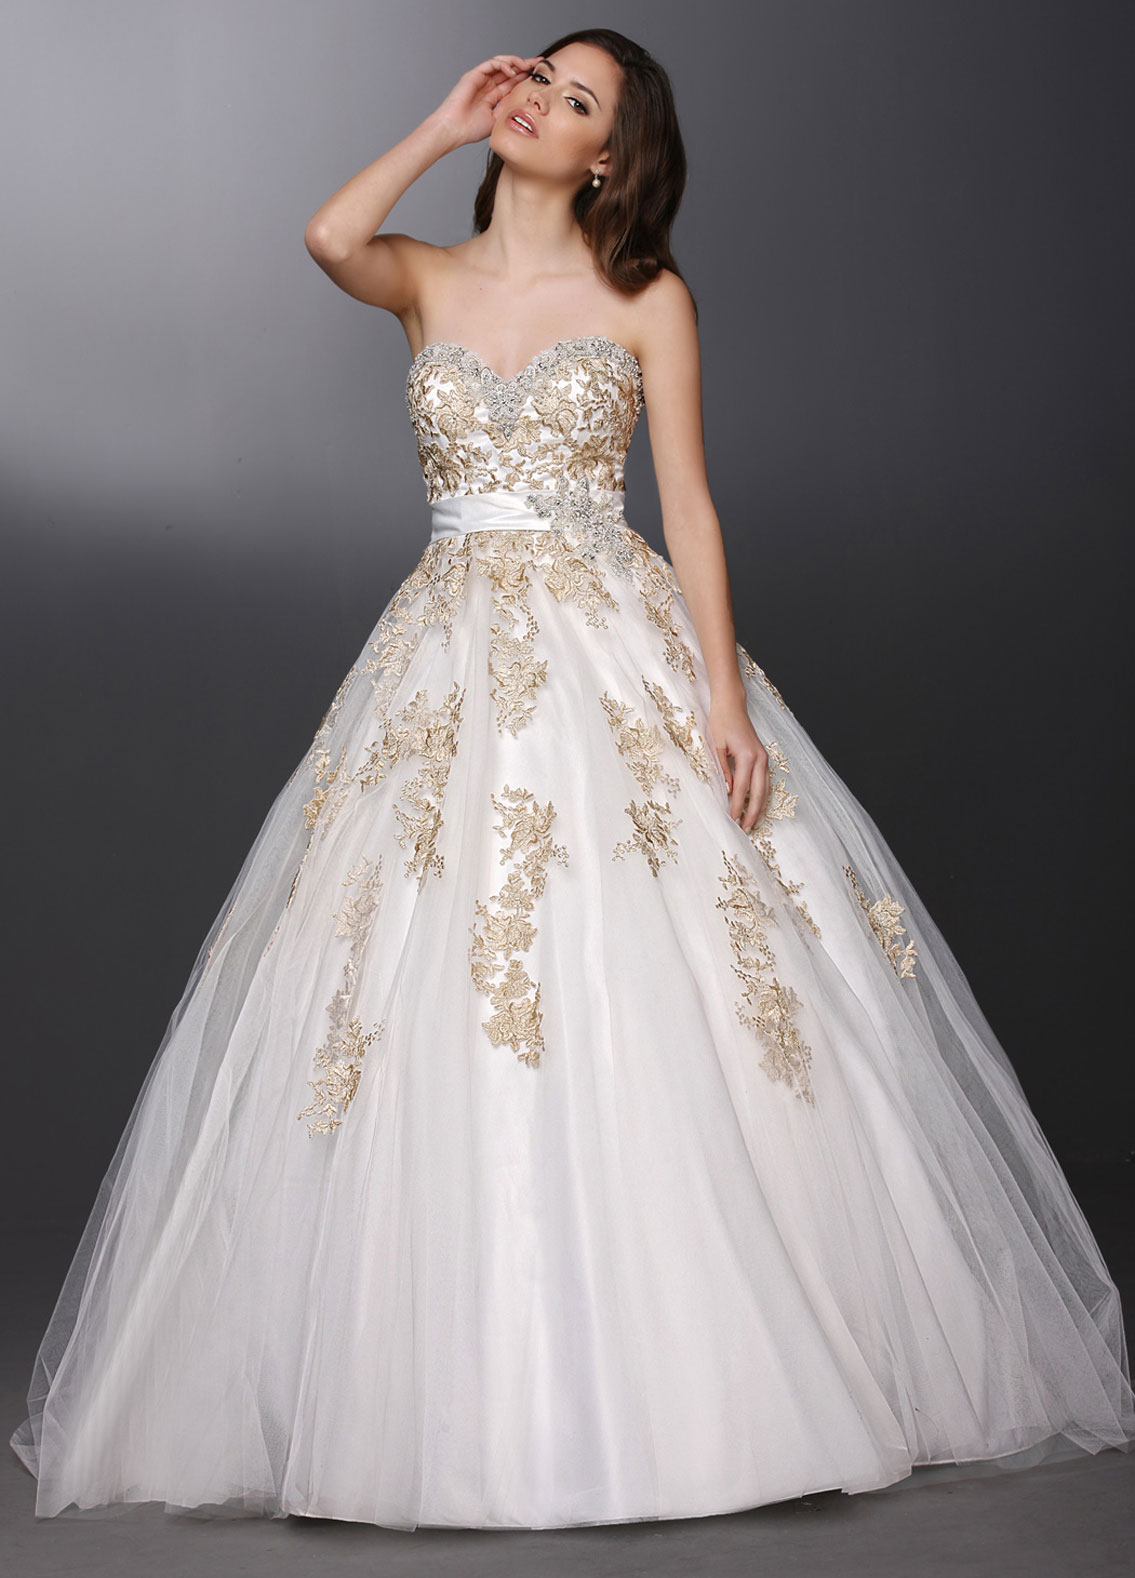 Gold and white short homecoming dress